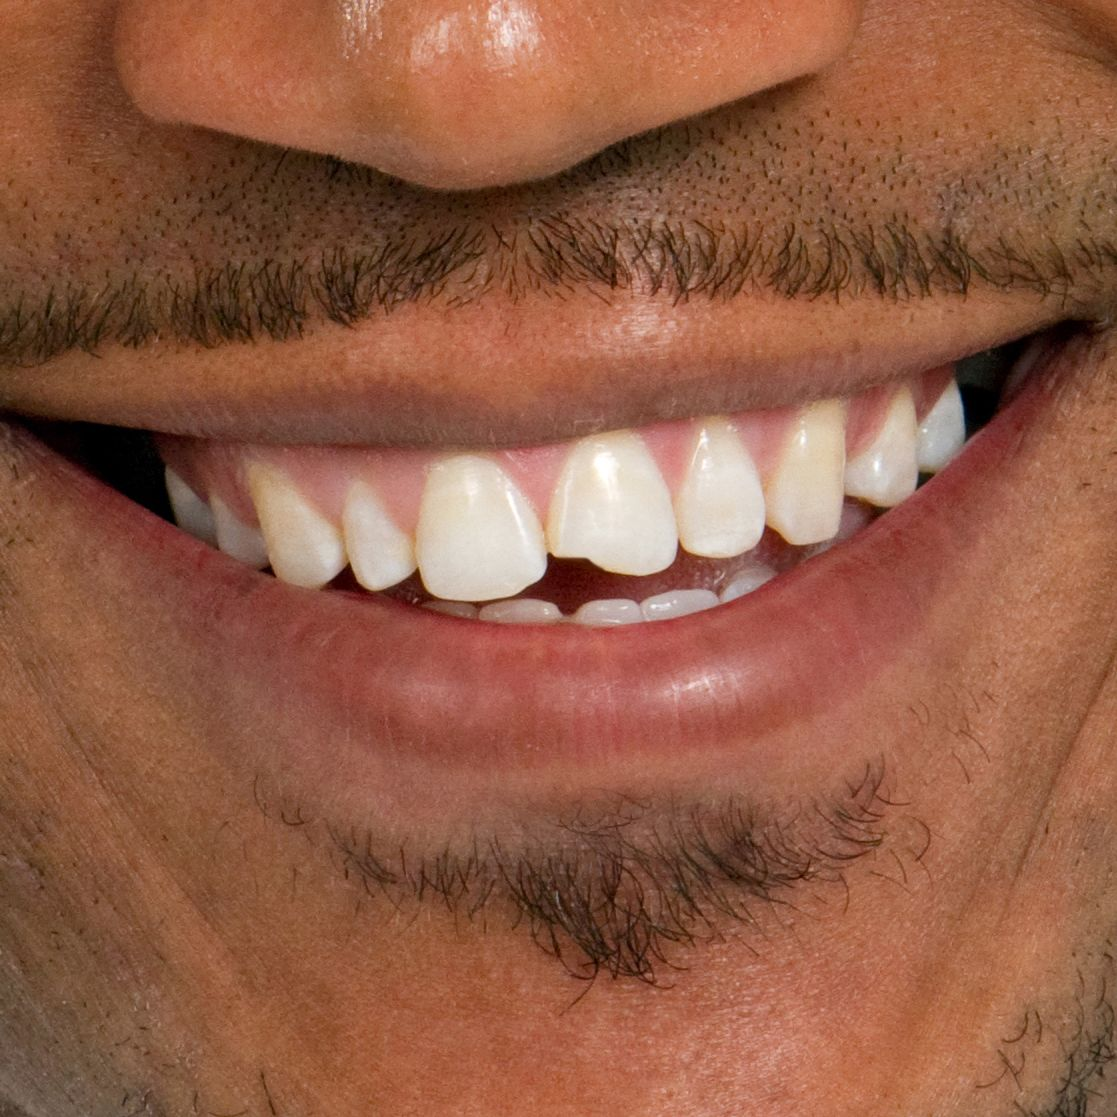 Man smiling with chipped front tooth